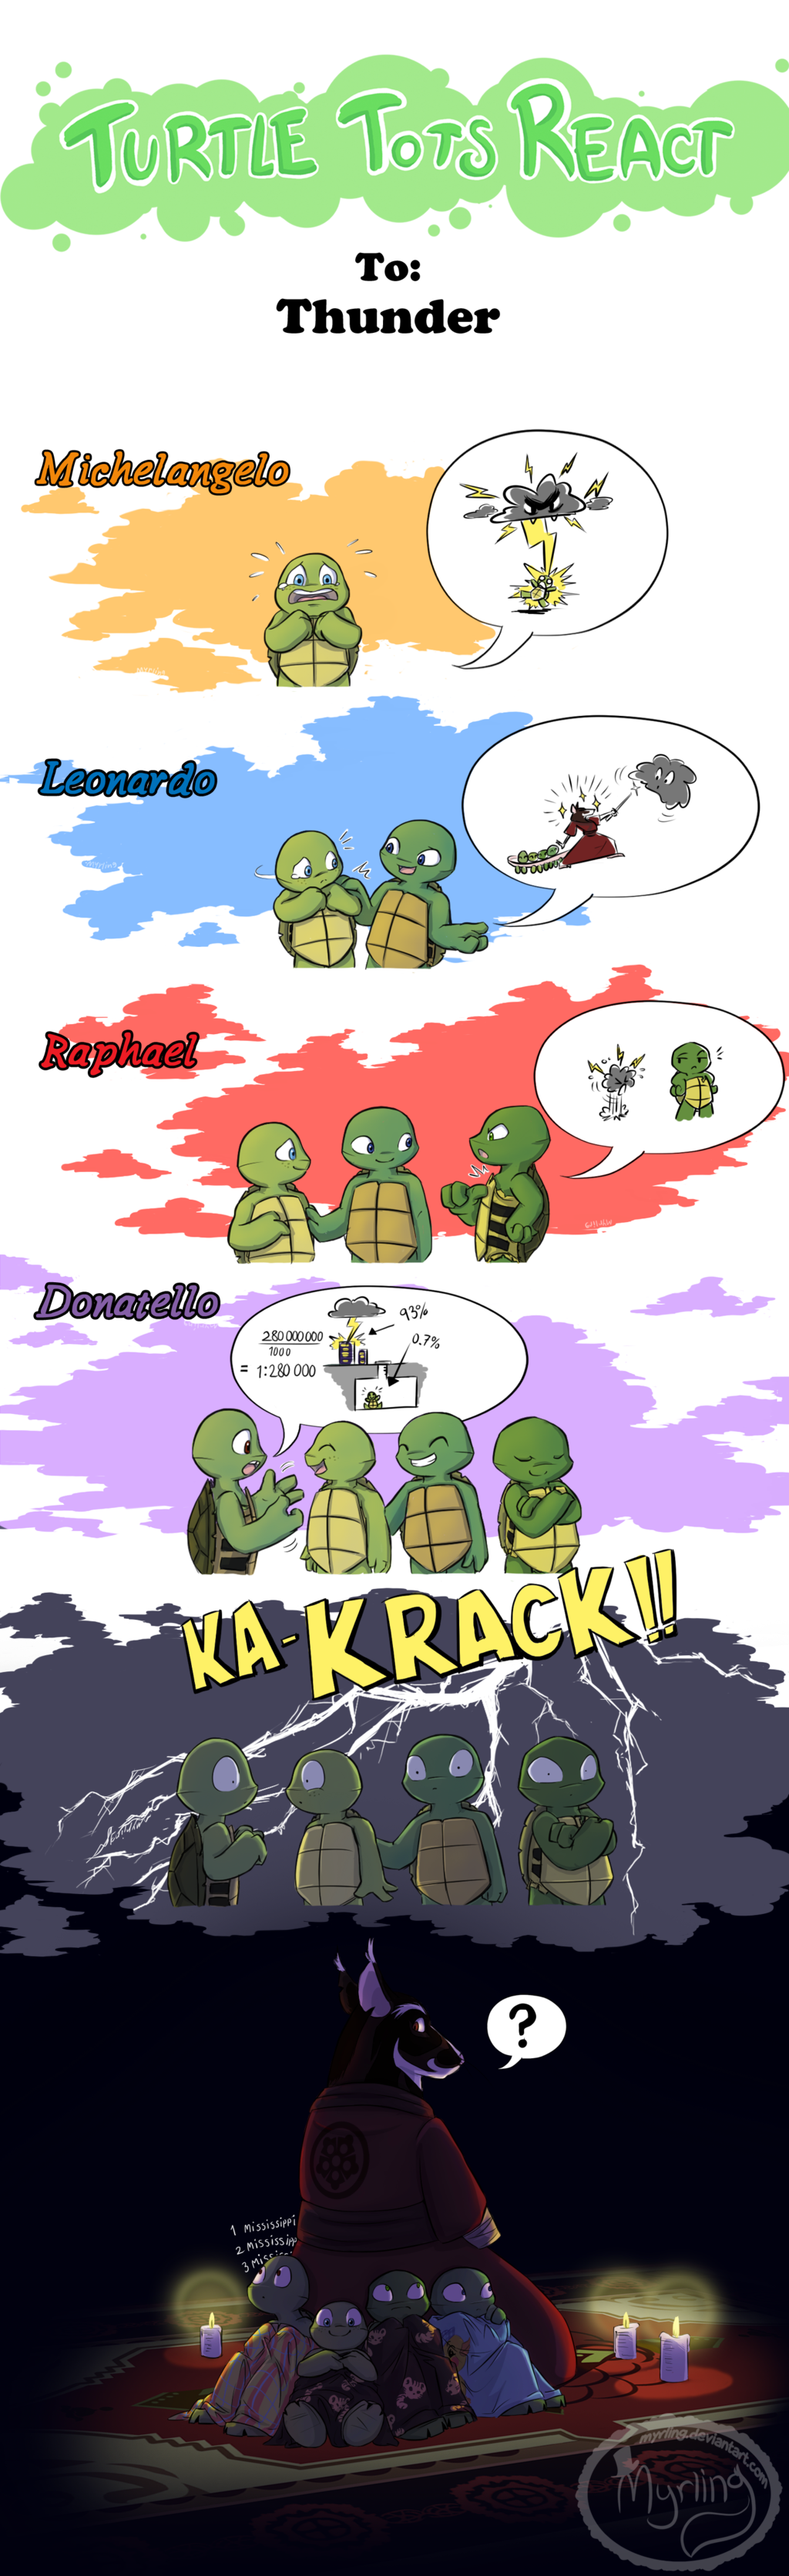 Ninja Turtle Quotes Deviantart More Like Donatellorirock2000  Ninja Turtles